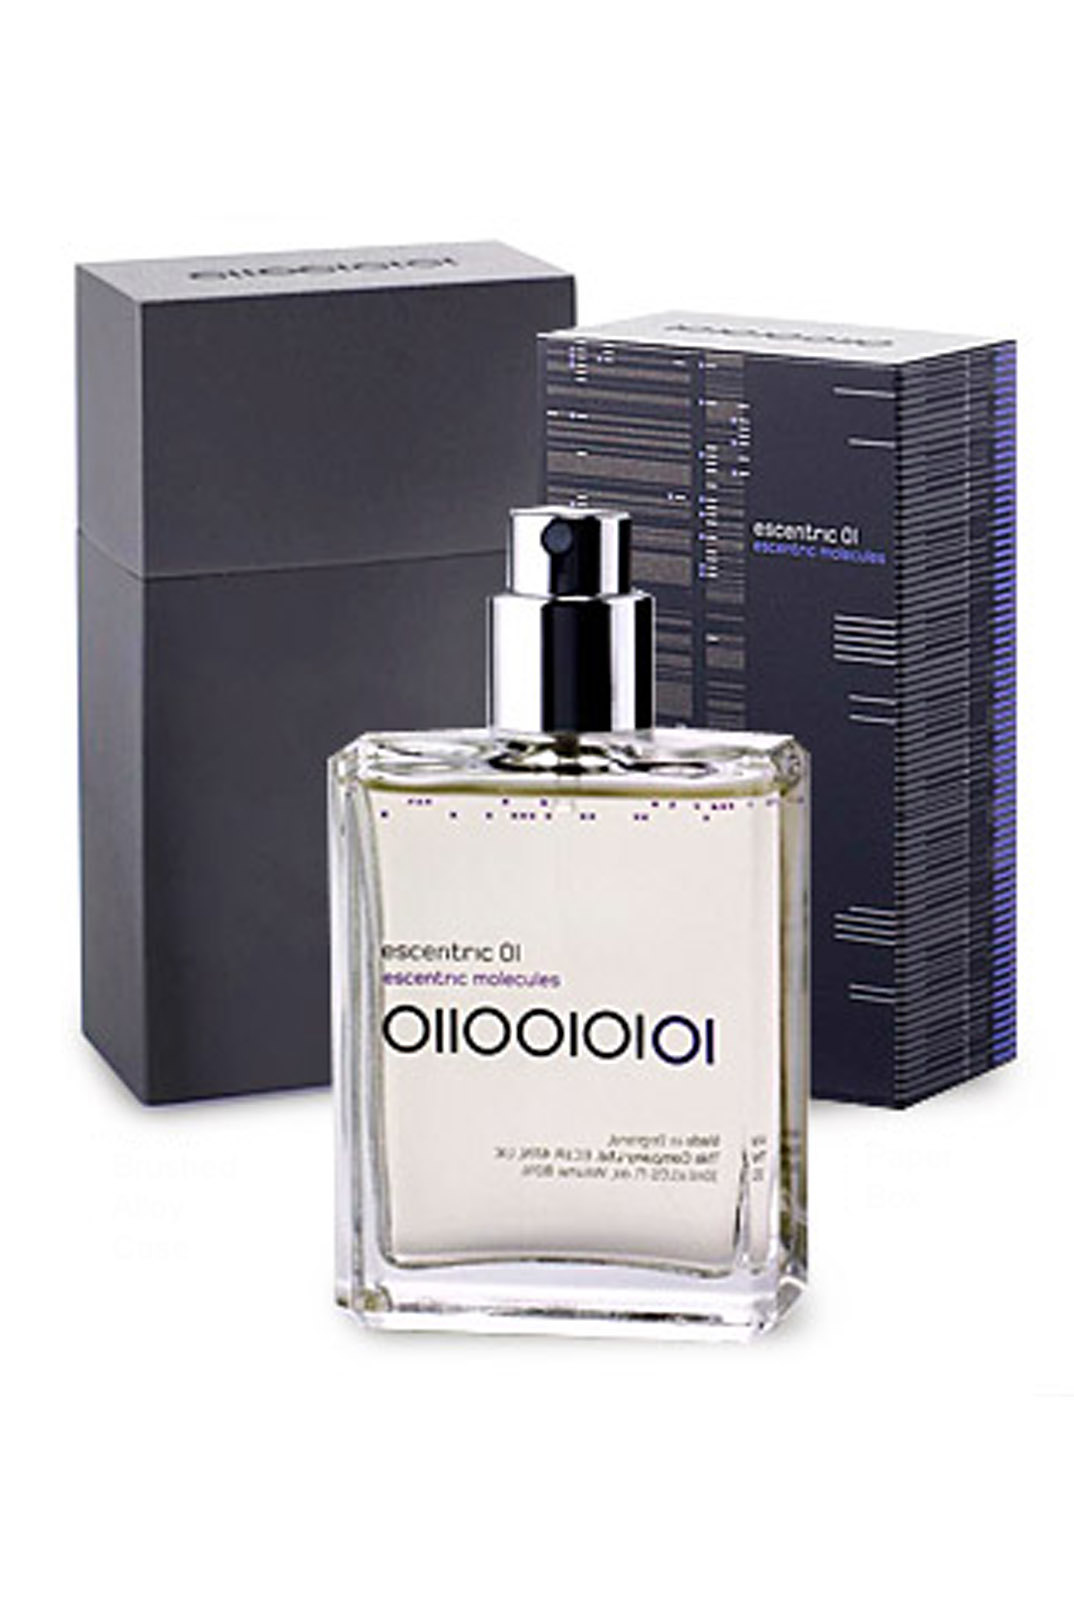 """Escentric 01"" Eau de Toilette Travel Spray"